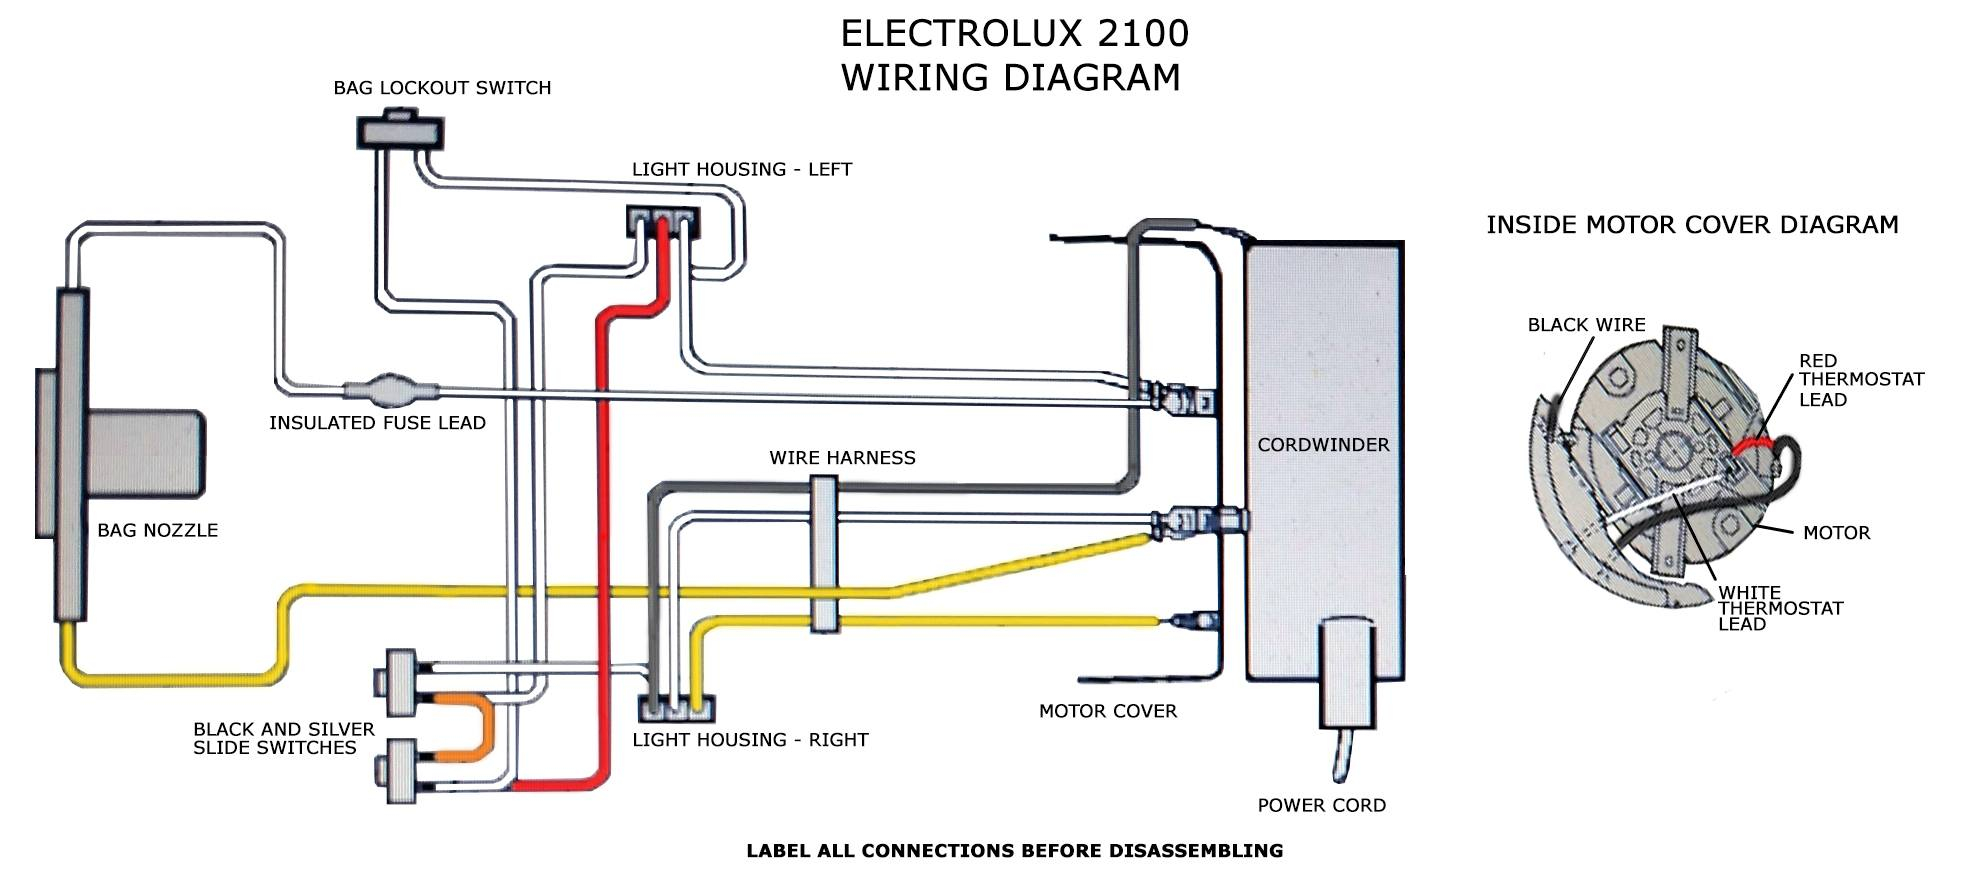 hight resolution of kirby vacuum wiring diagram wiring diagram panelvacuum cleaner wiring diagram designmethodsandprocesses co uk u2022beam